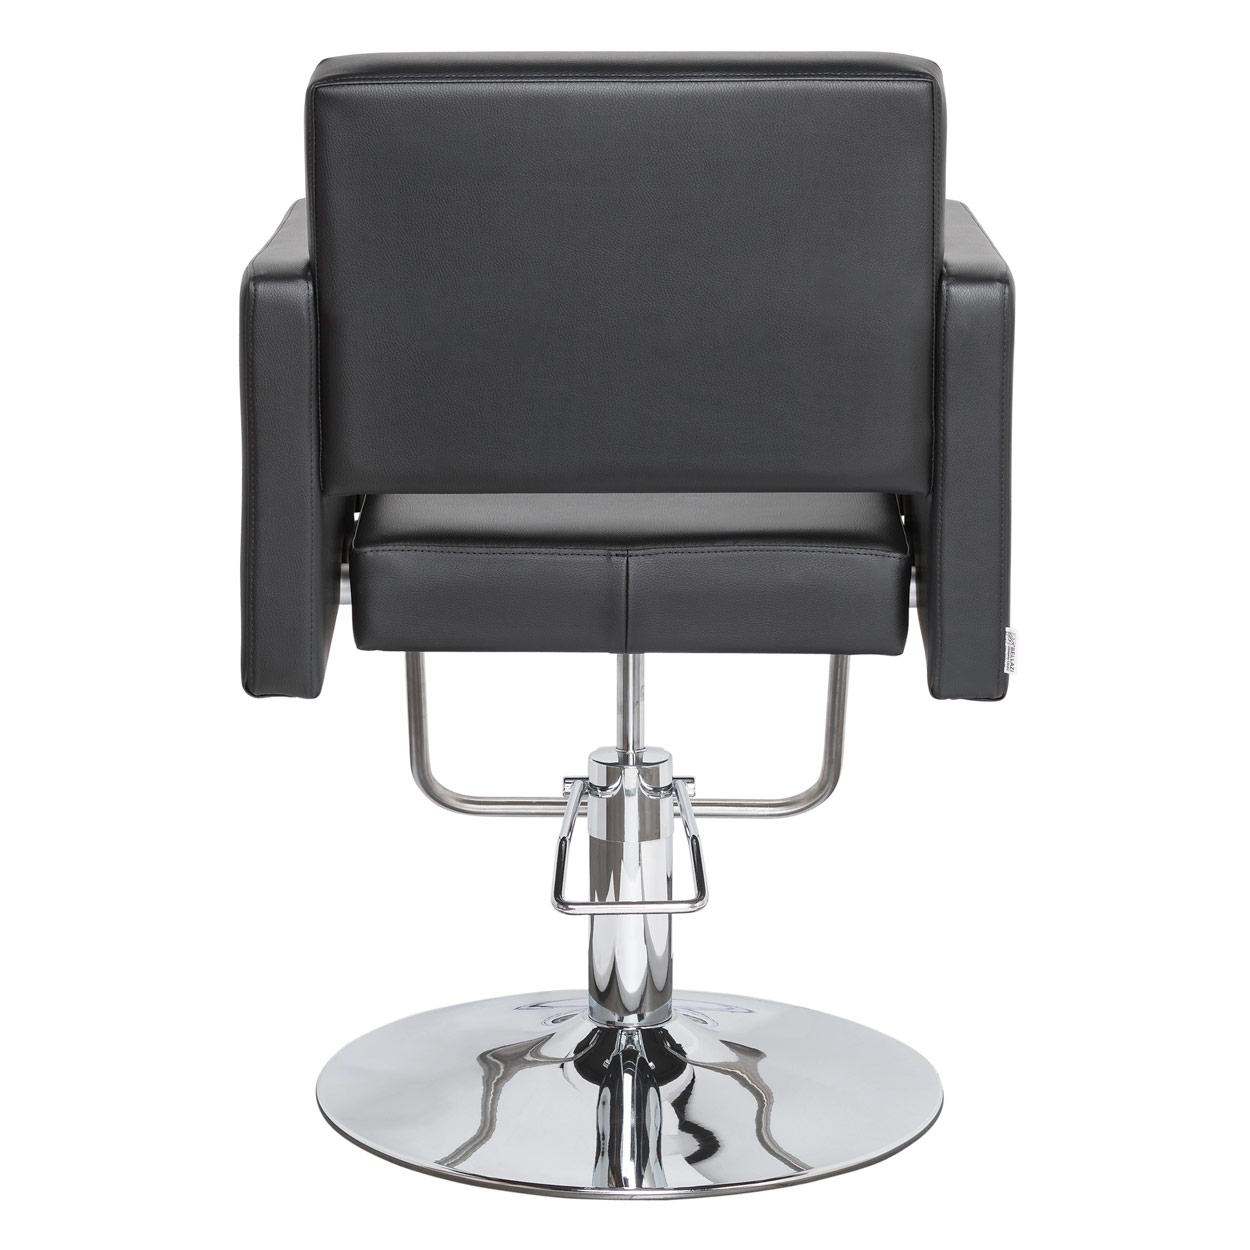 Modin Hair Salon Styling Chair alternative product image 4